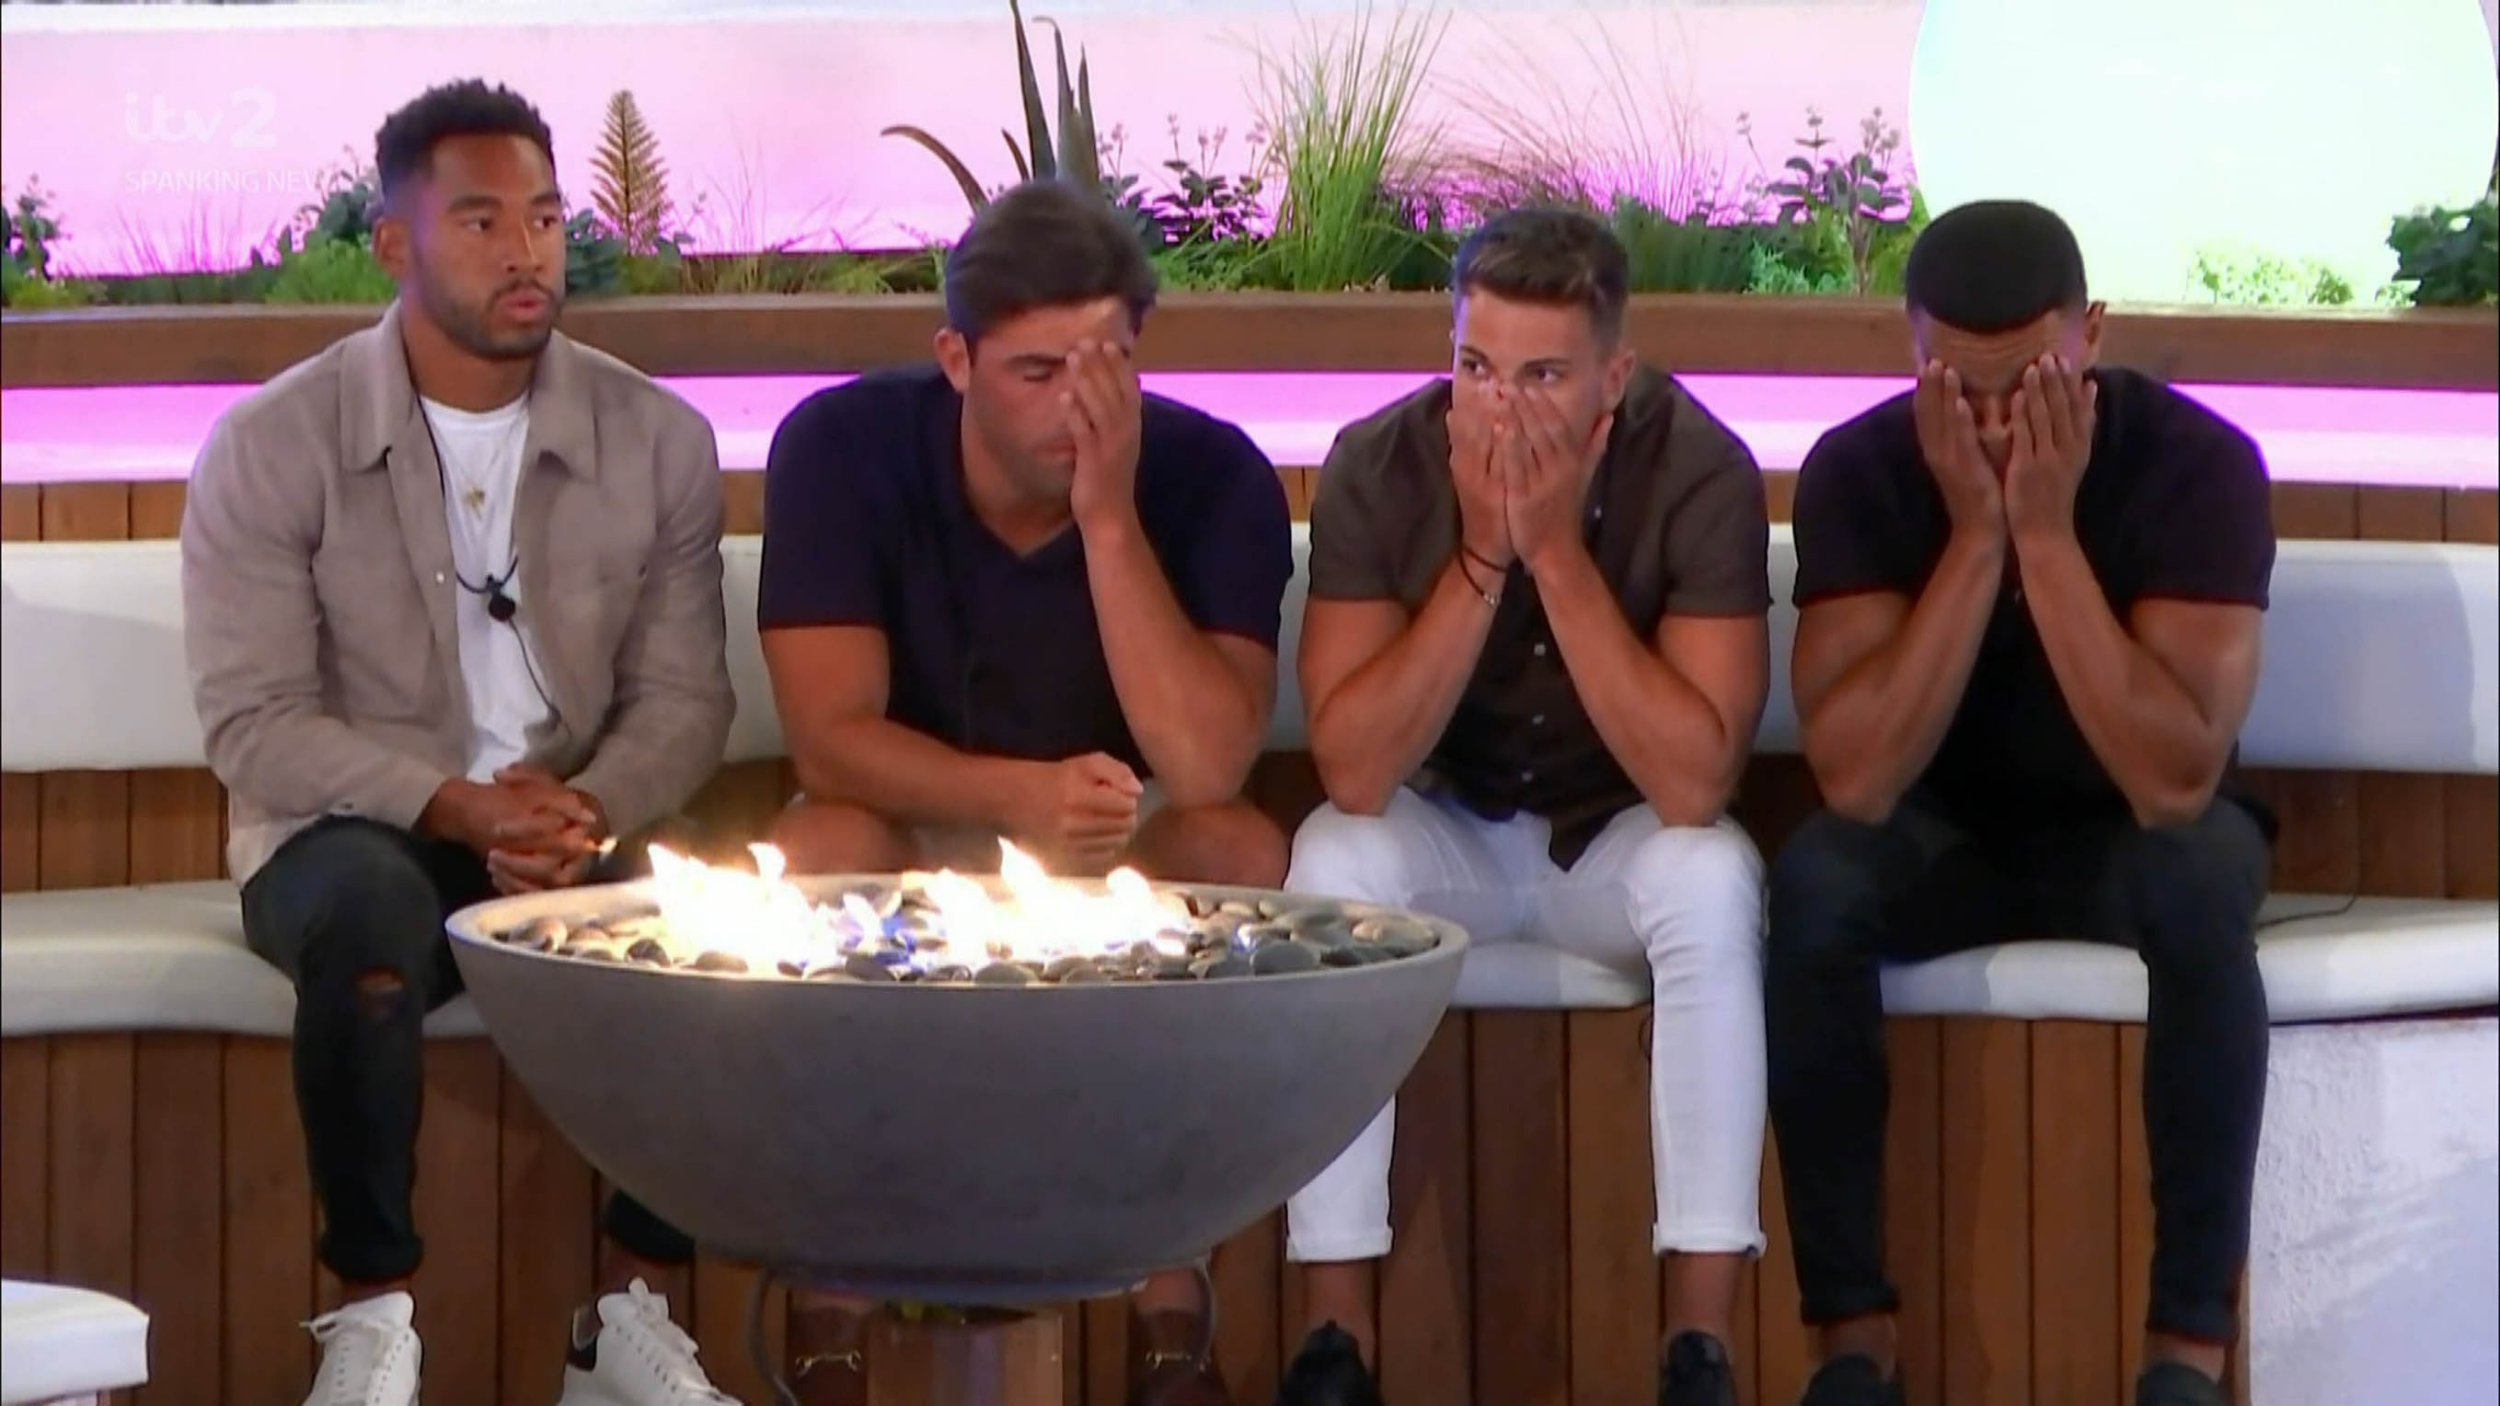 """27-6-2018 TV show """"Love Island"""" (series 4) Day 25 Pictured: Jack Fincham PLANET PHOTOS www.planetphotos.co.uk info@planetphotos.co.uk +44 (0)20 8883 1438"""